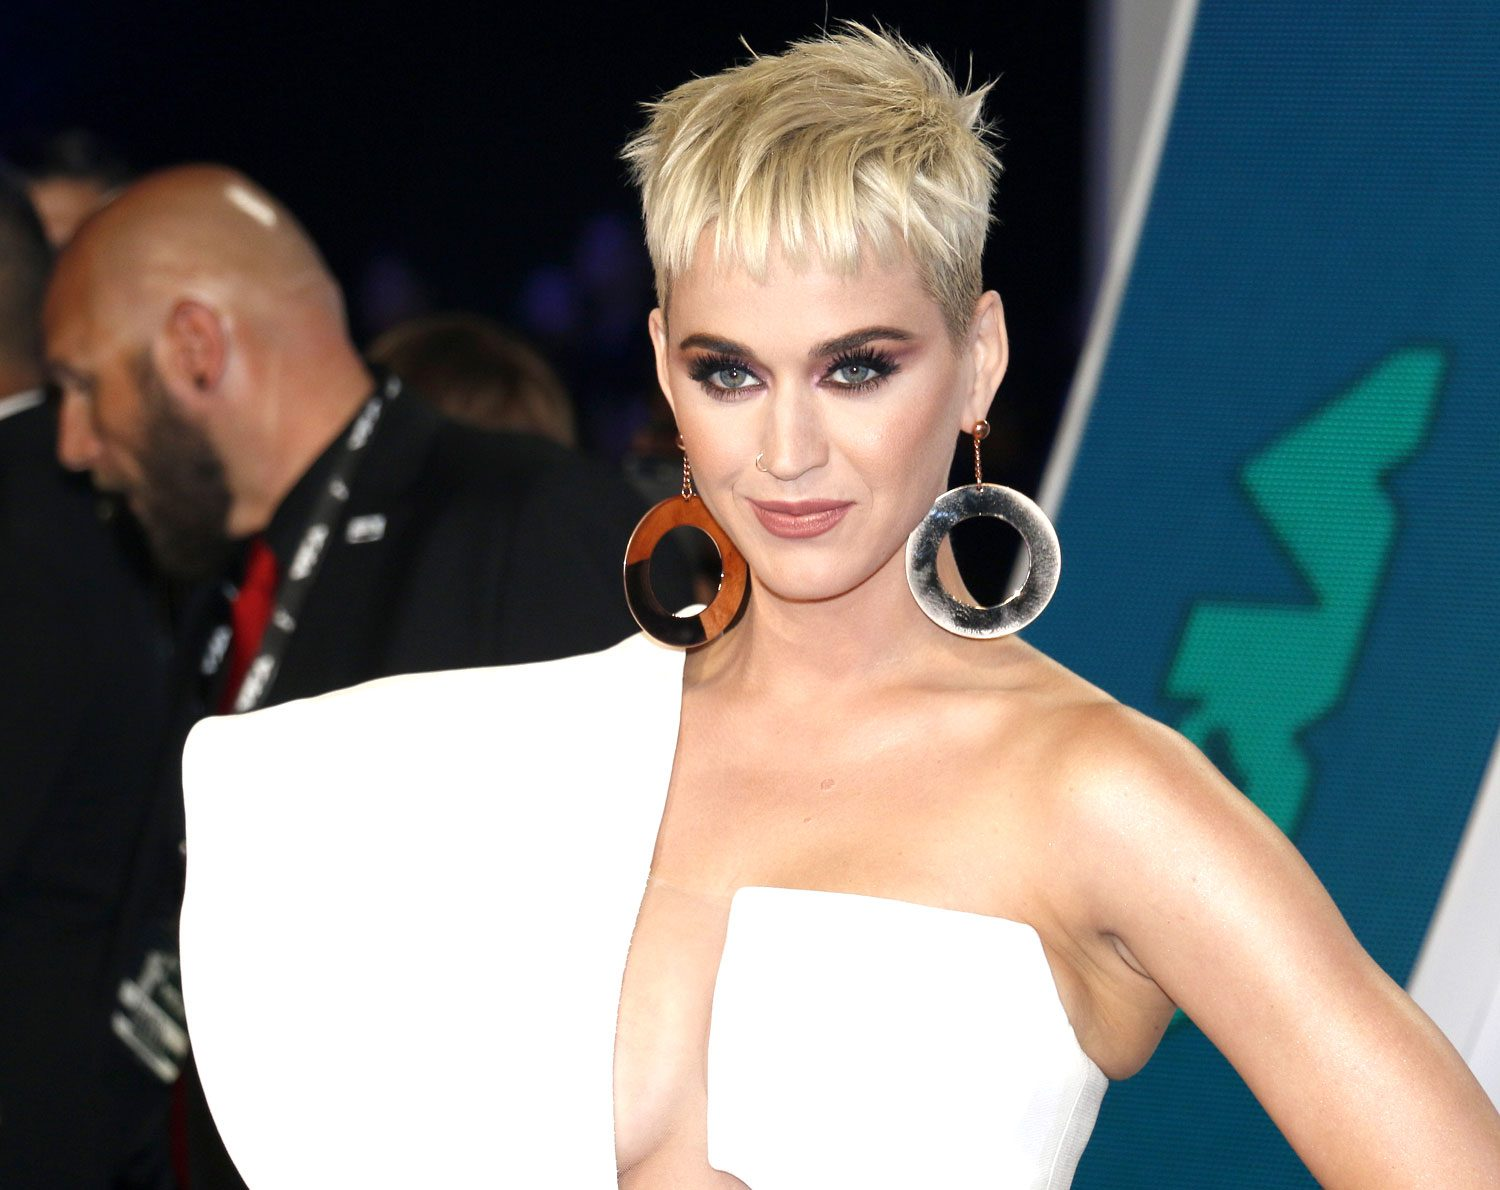 Katy Perry's Reaction to This Proposal on 'American Idol' Is All of Us